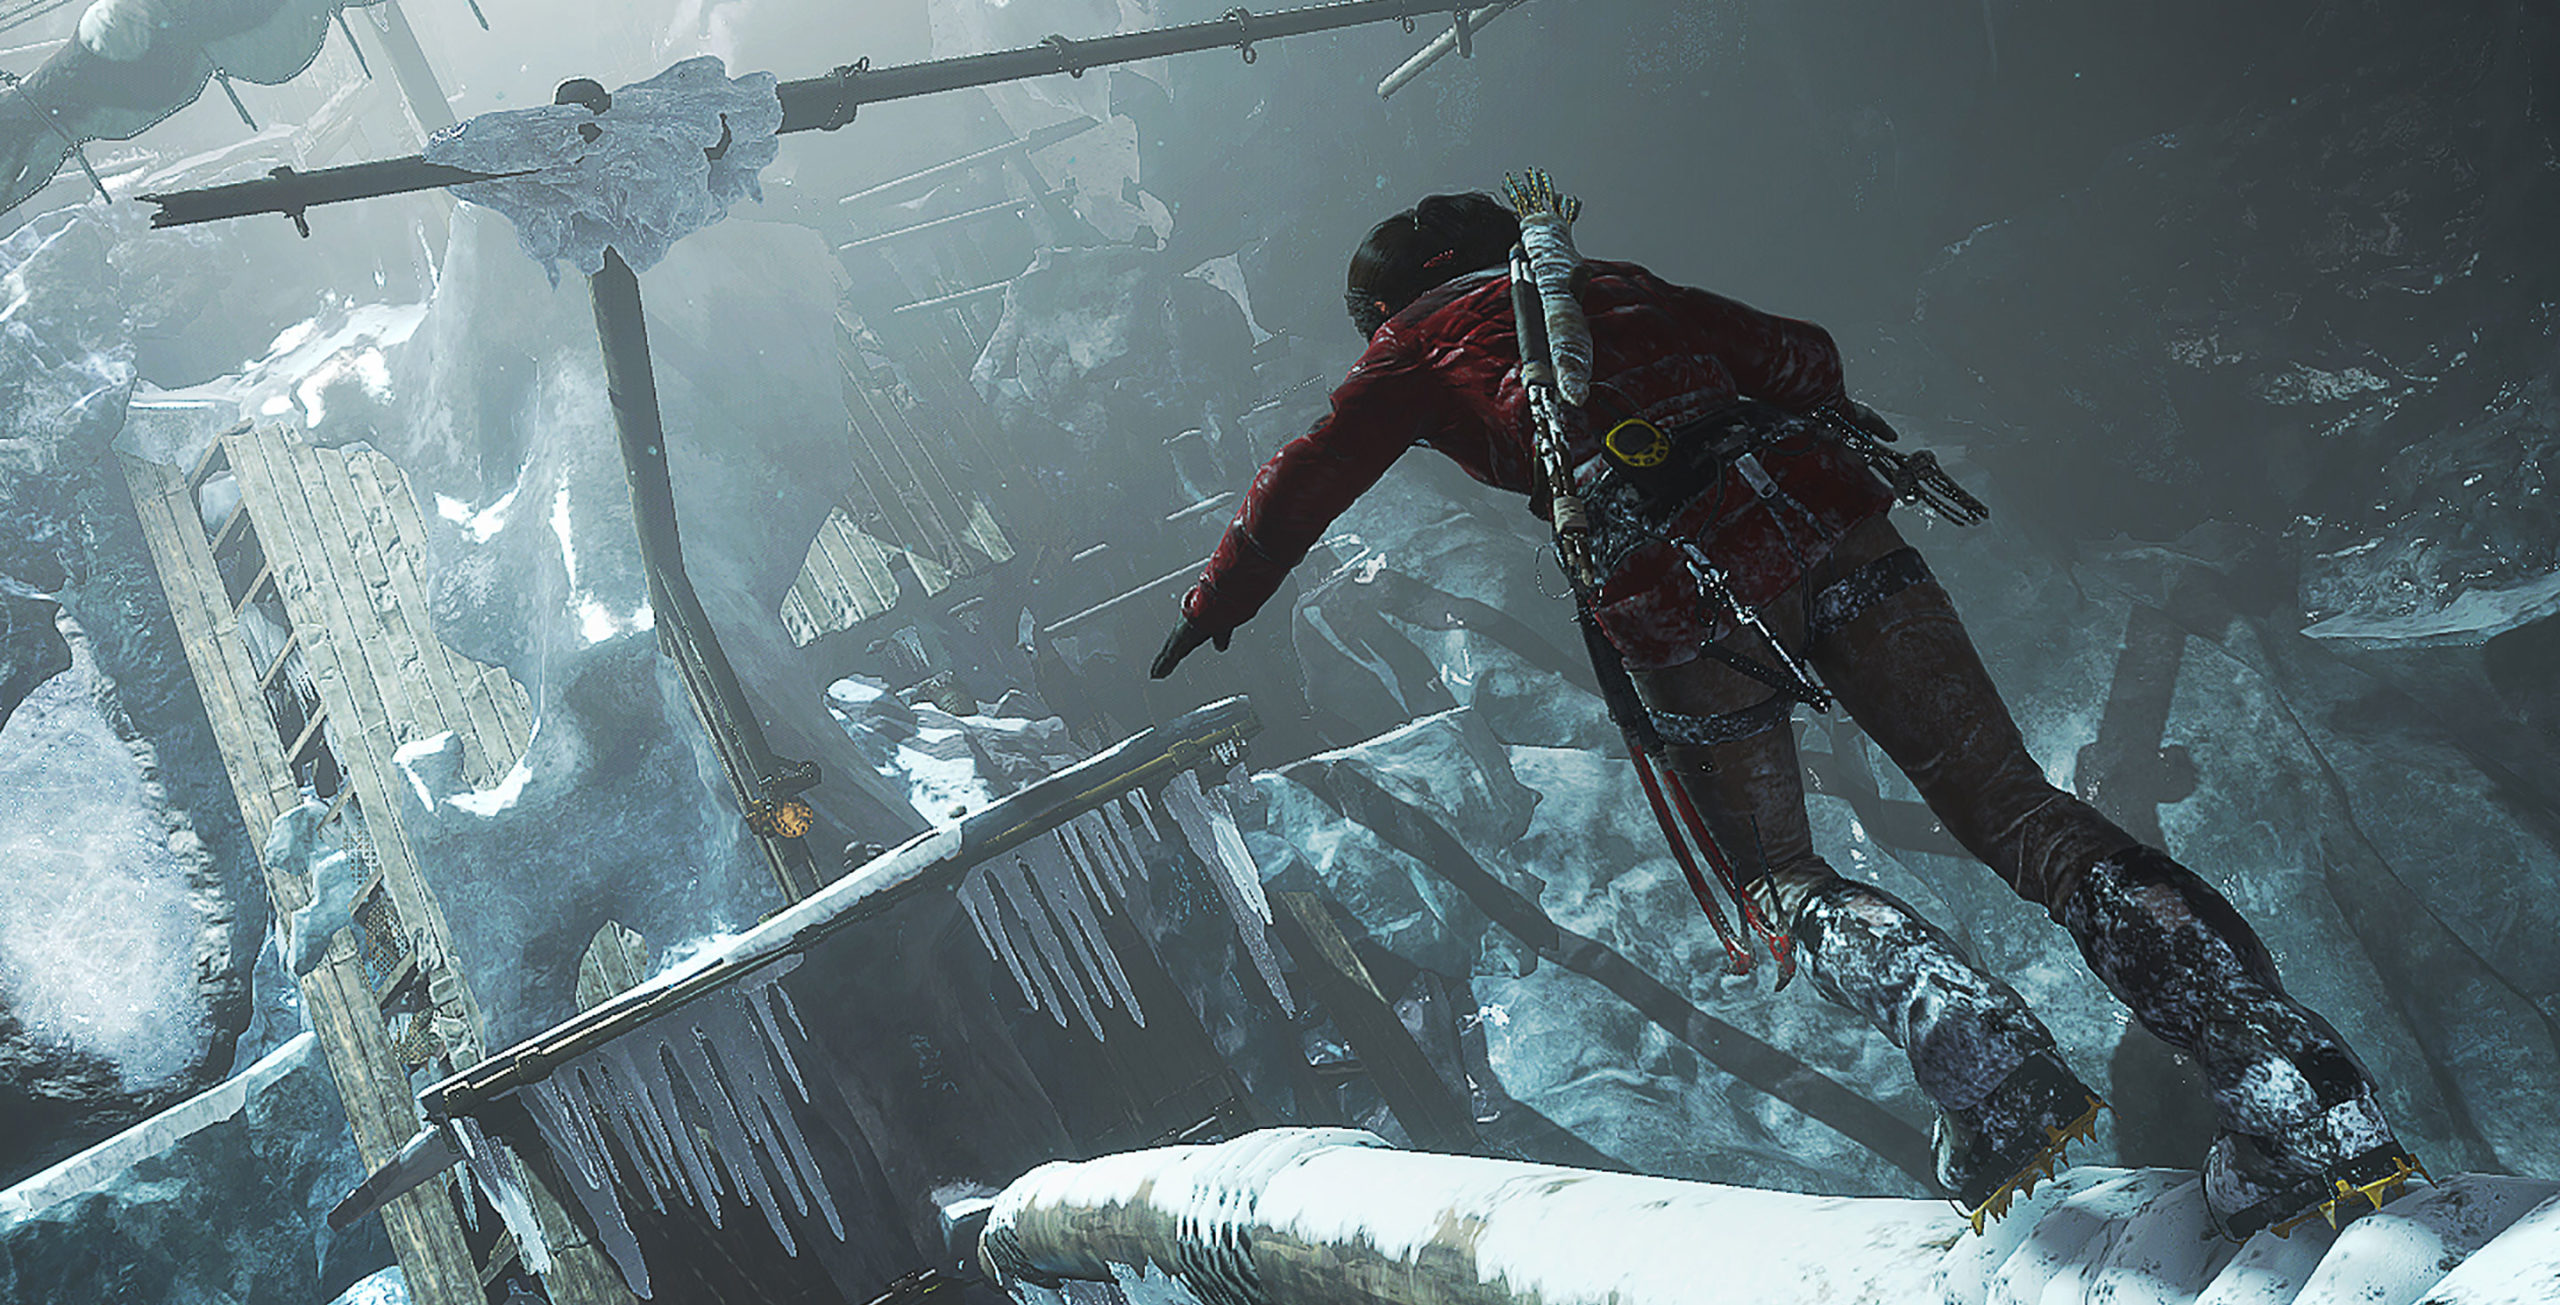 Lara carefully treads across the frozen stern of a derelict ship, which has made its way into a huge, icy cavern.